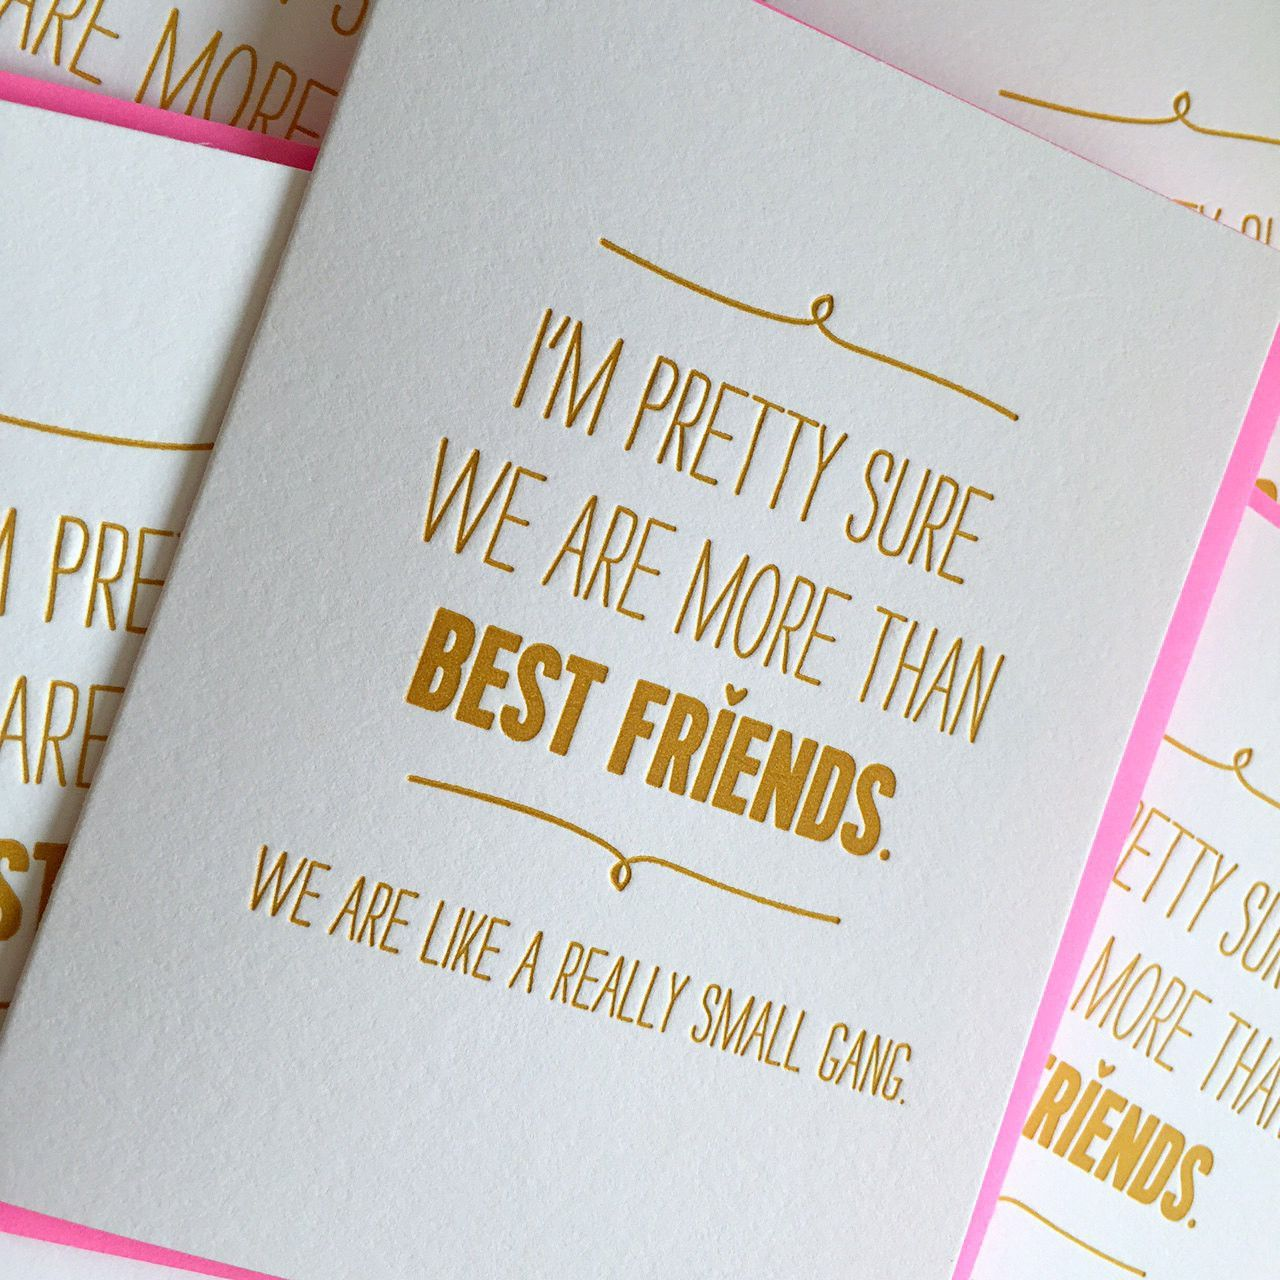 Best Friend Card Really Small Gang Quotes Cards For Friends